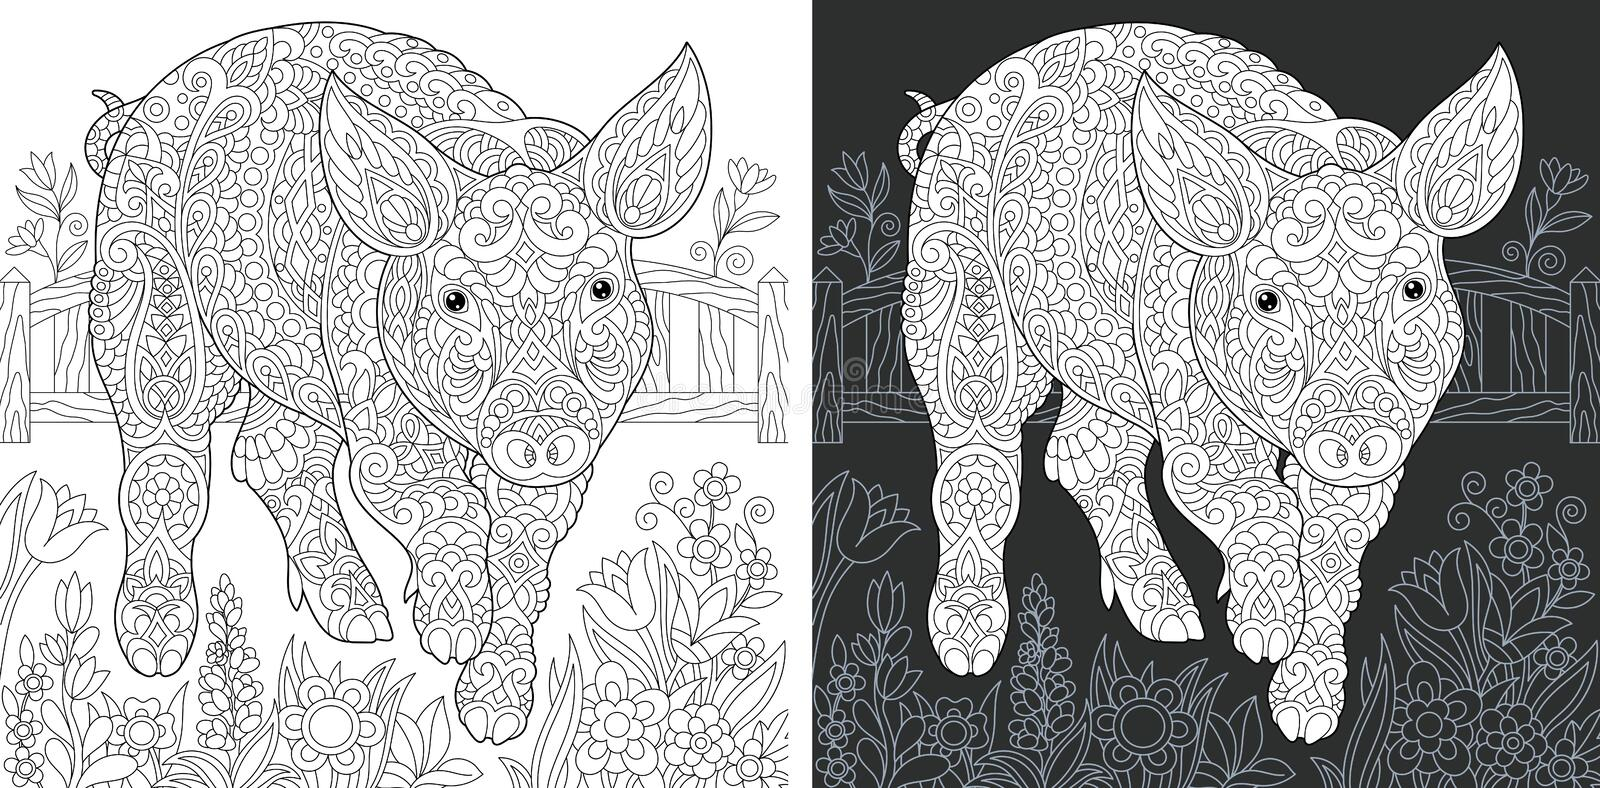 Pig Coloring Page. Pig. Coloring Page. Coloring Book. Colouring picture with piggy drawn in zentangle style. Antistress freehand sketch drawing. Vector stock illustration